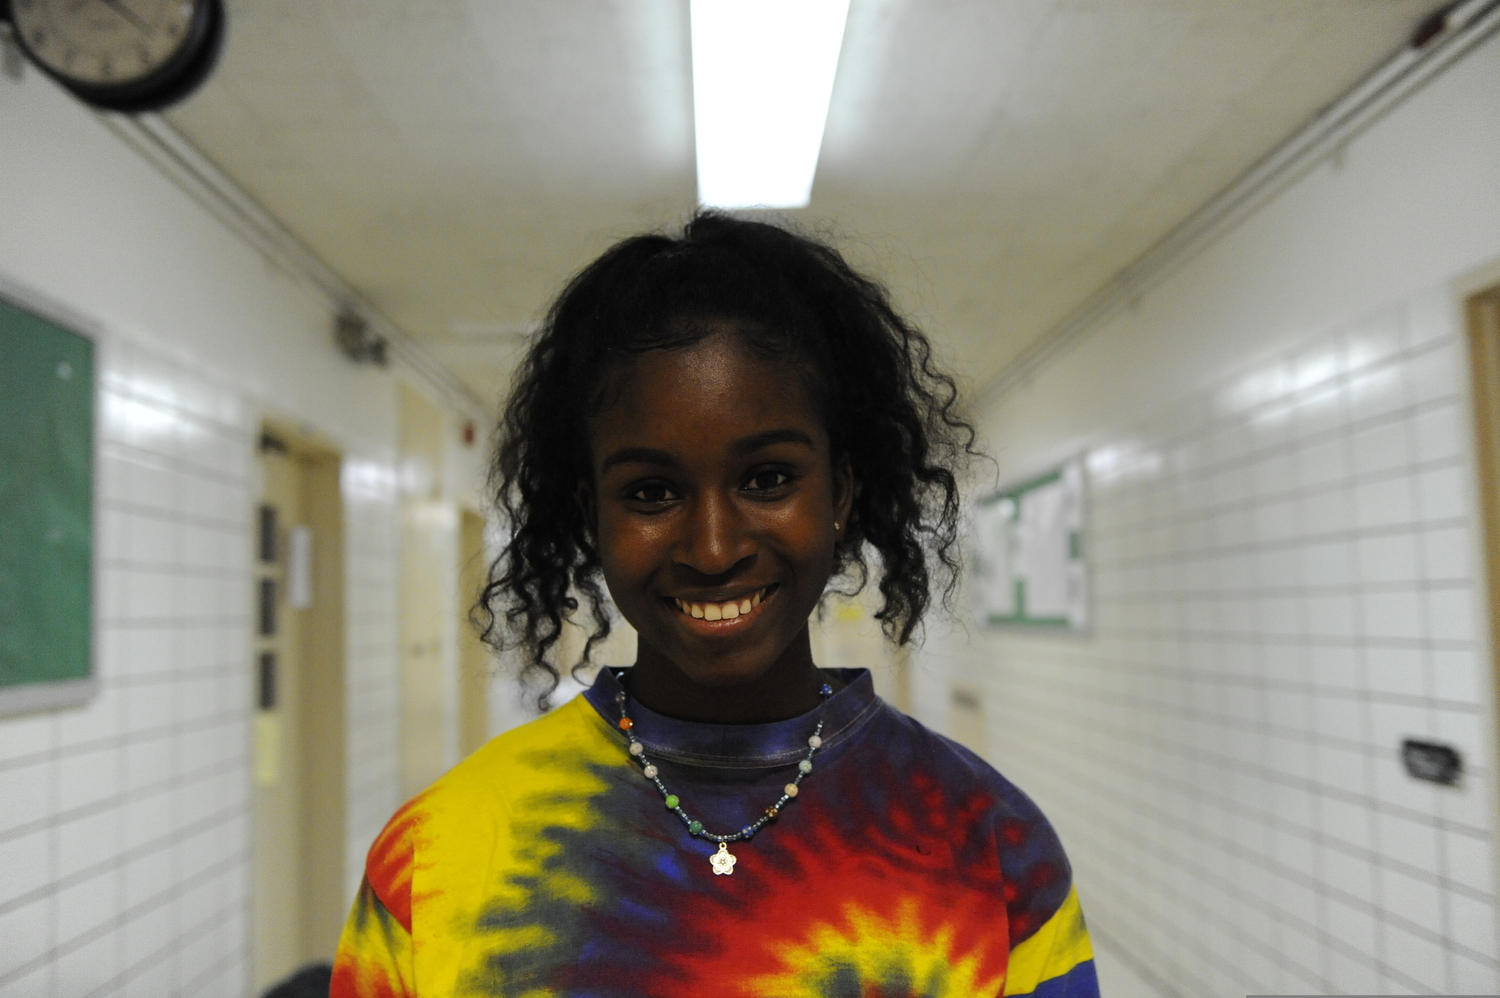 Jasmine Kelly '21 draws in her free time as a stress reliever from the rigorous  academic life at Bronx Science. Like many of our student artists, she finds time to make art after school and on weekends.